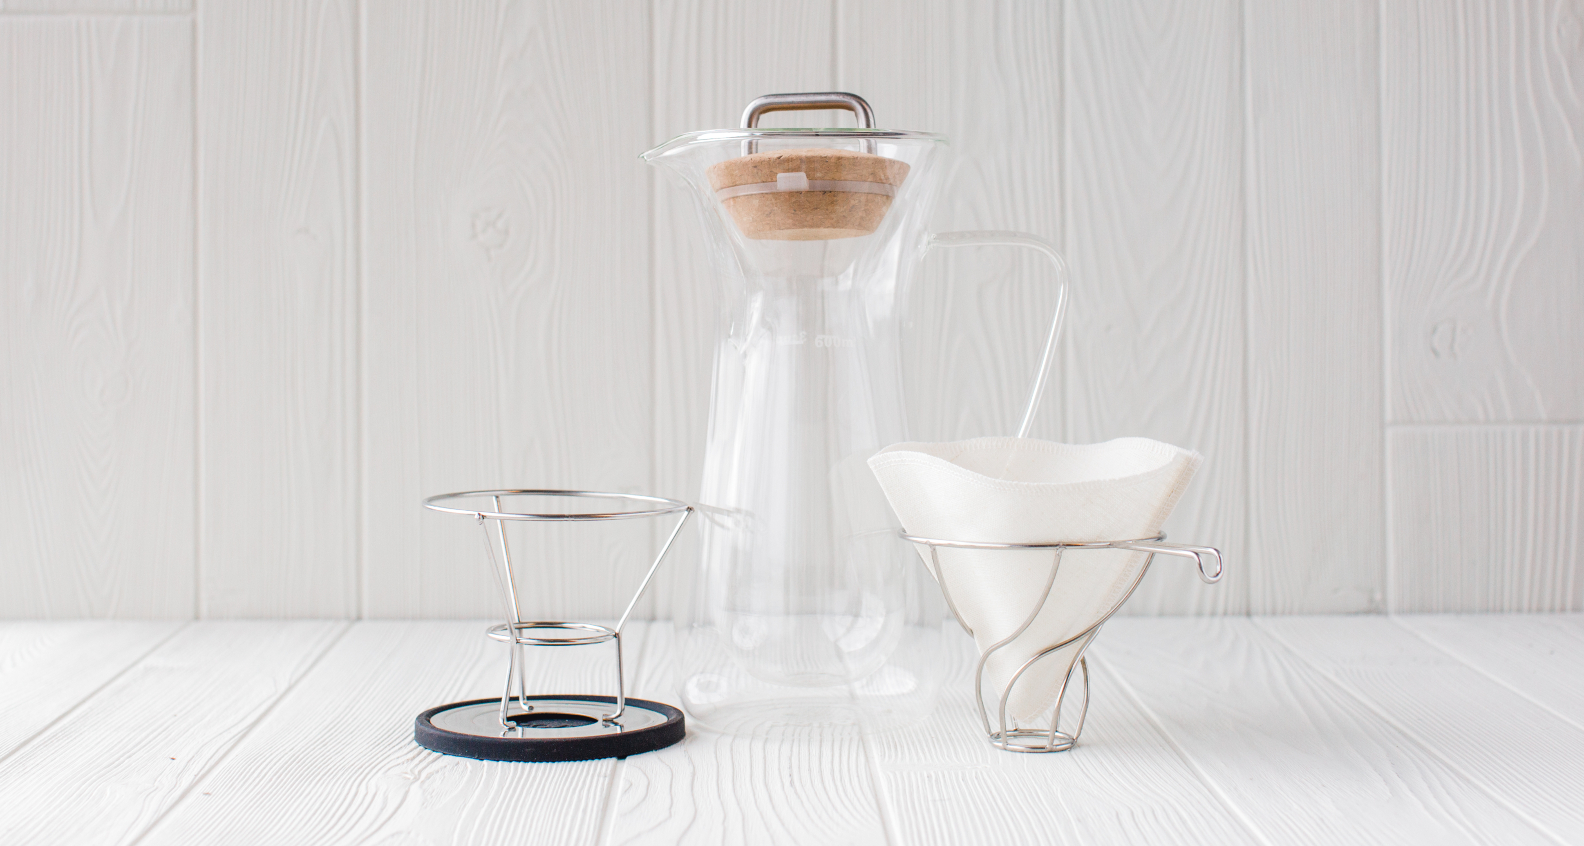 Bolio Designs Pour Over Coffee Kit